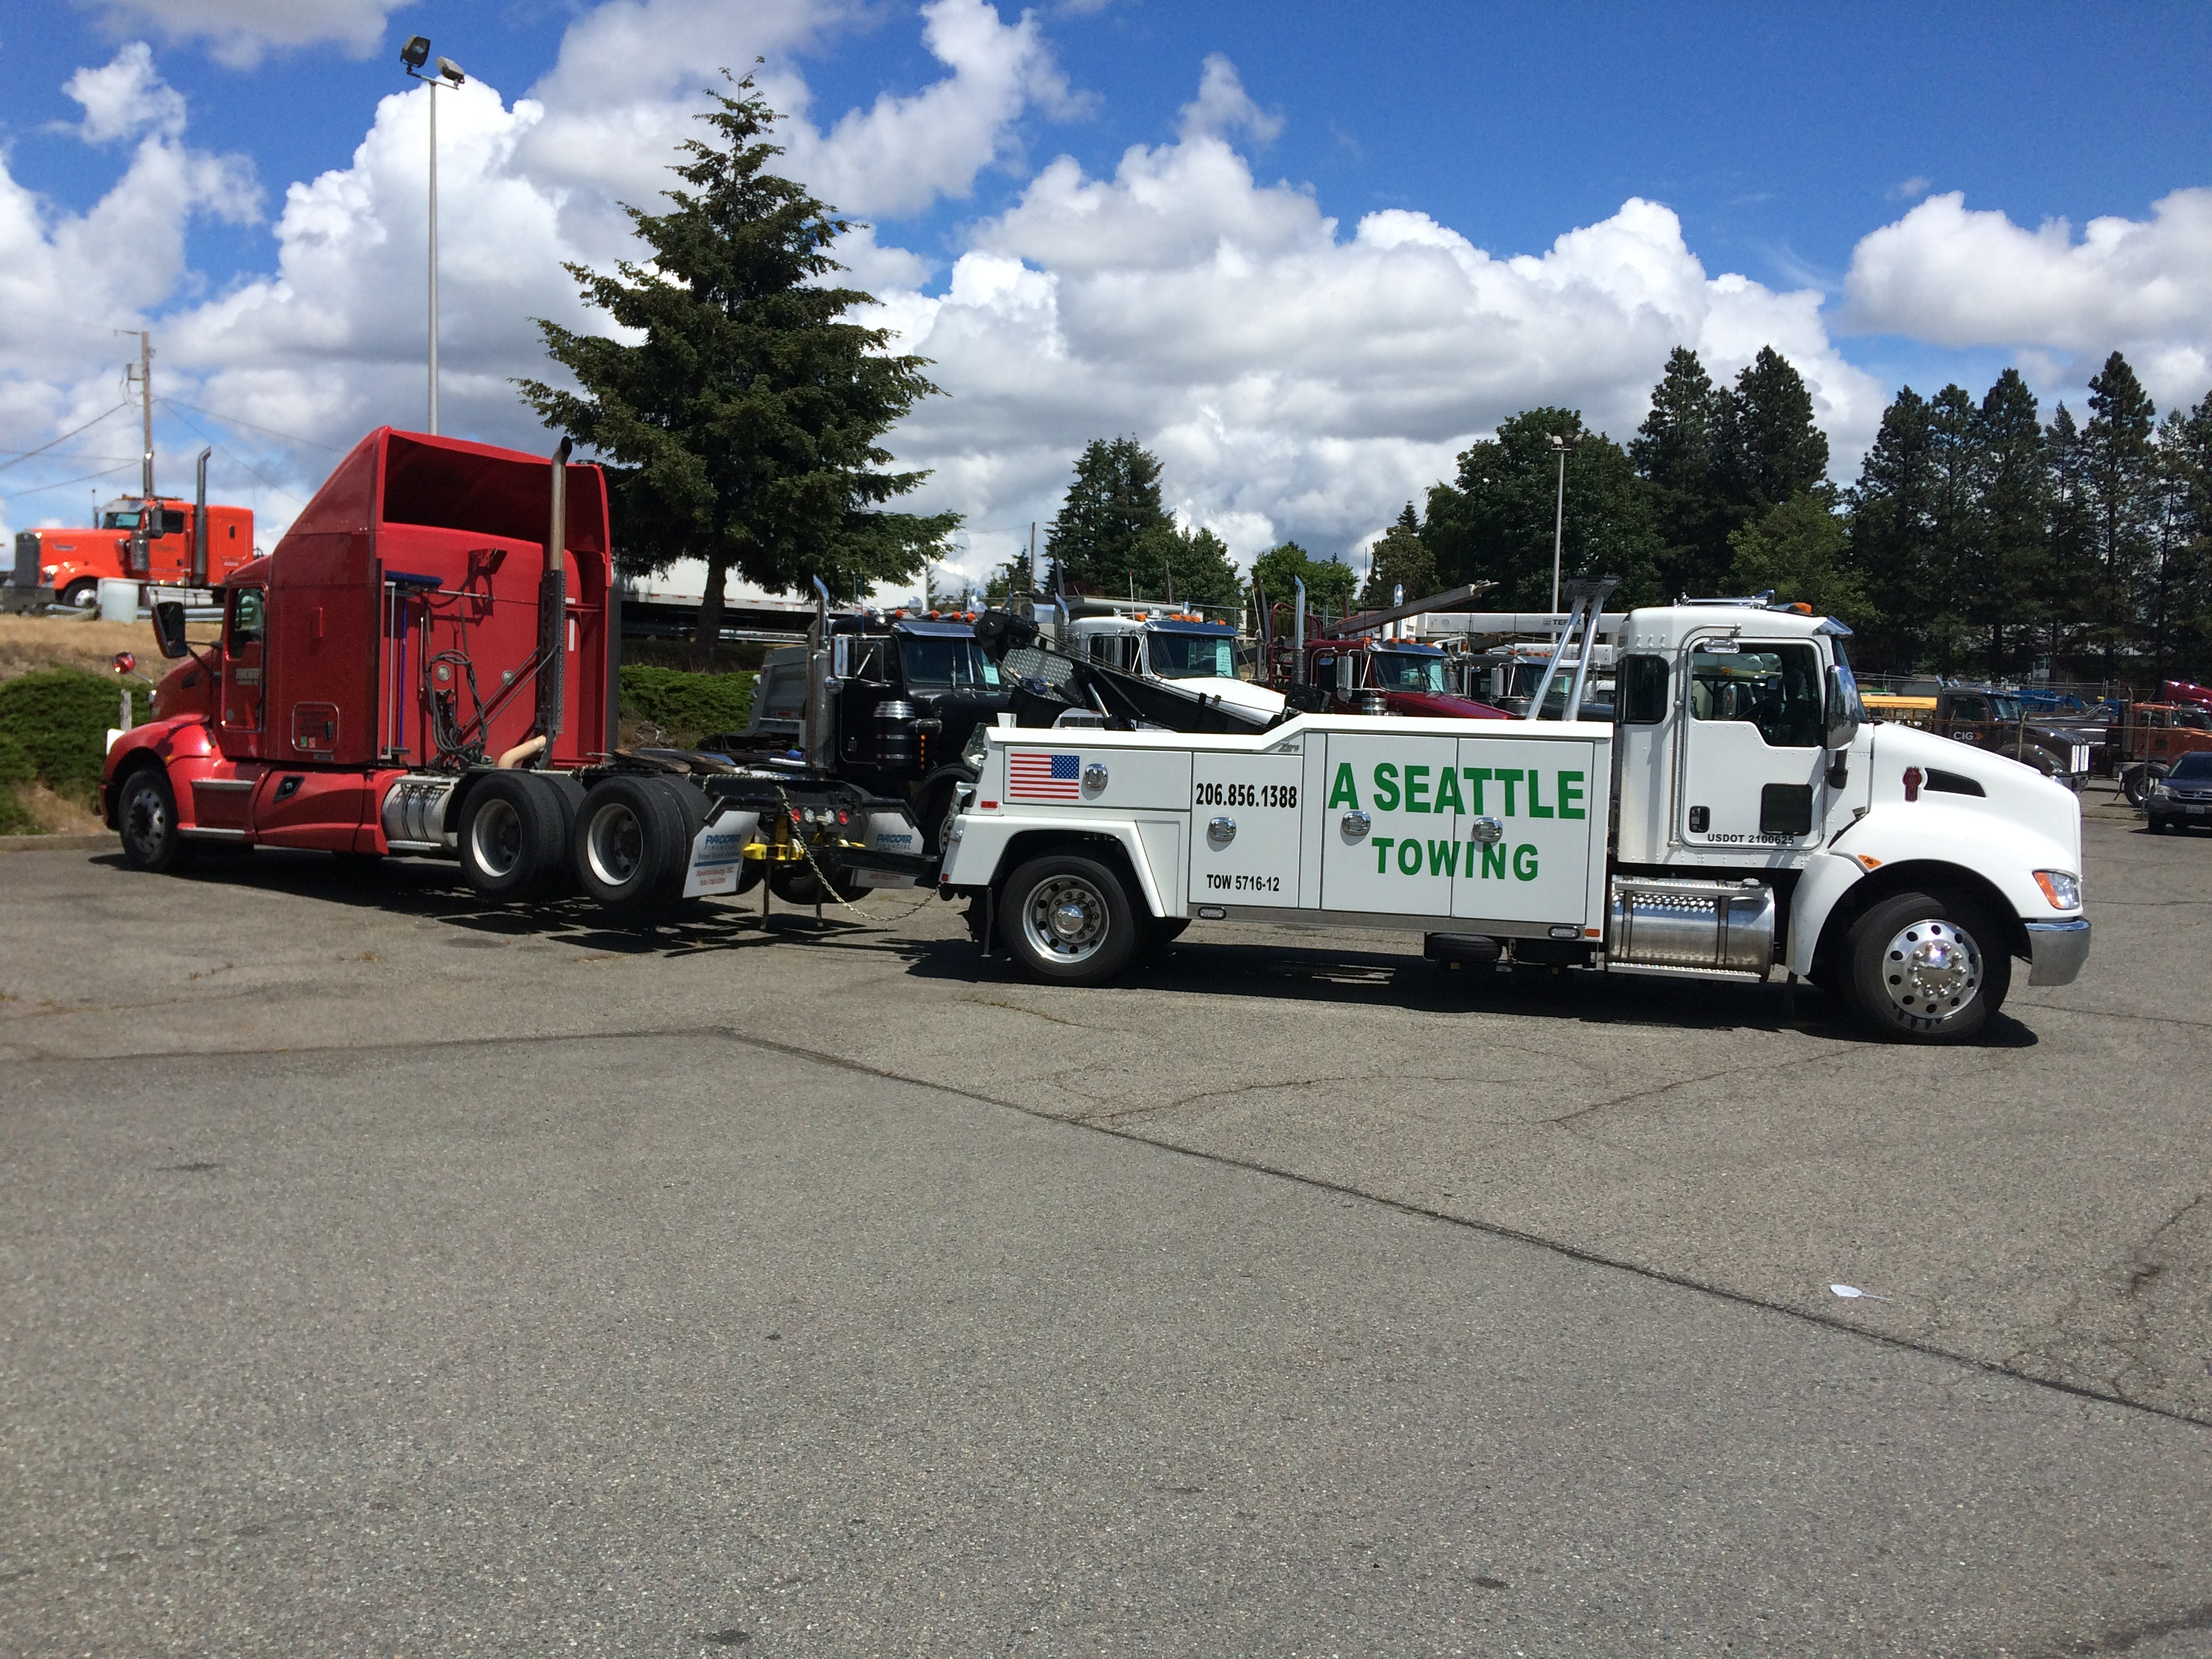 A Seattle Towing (41)